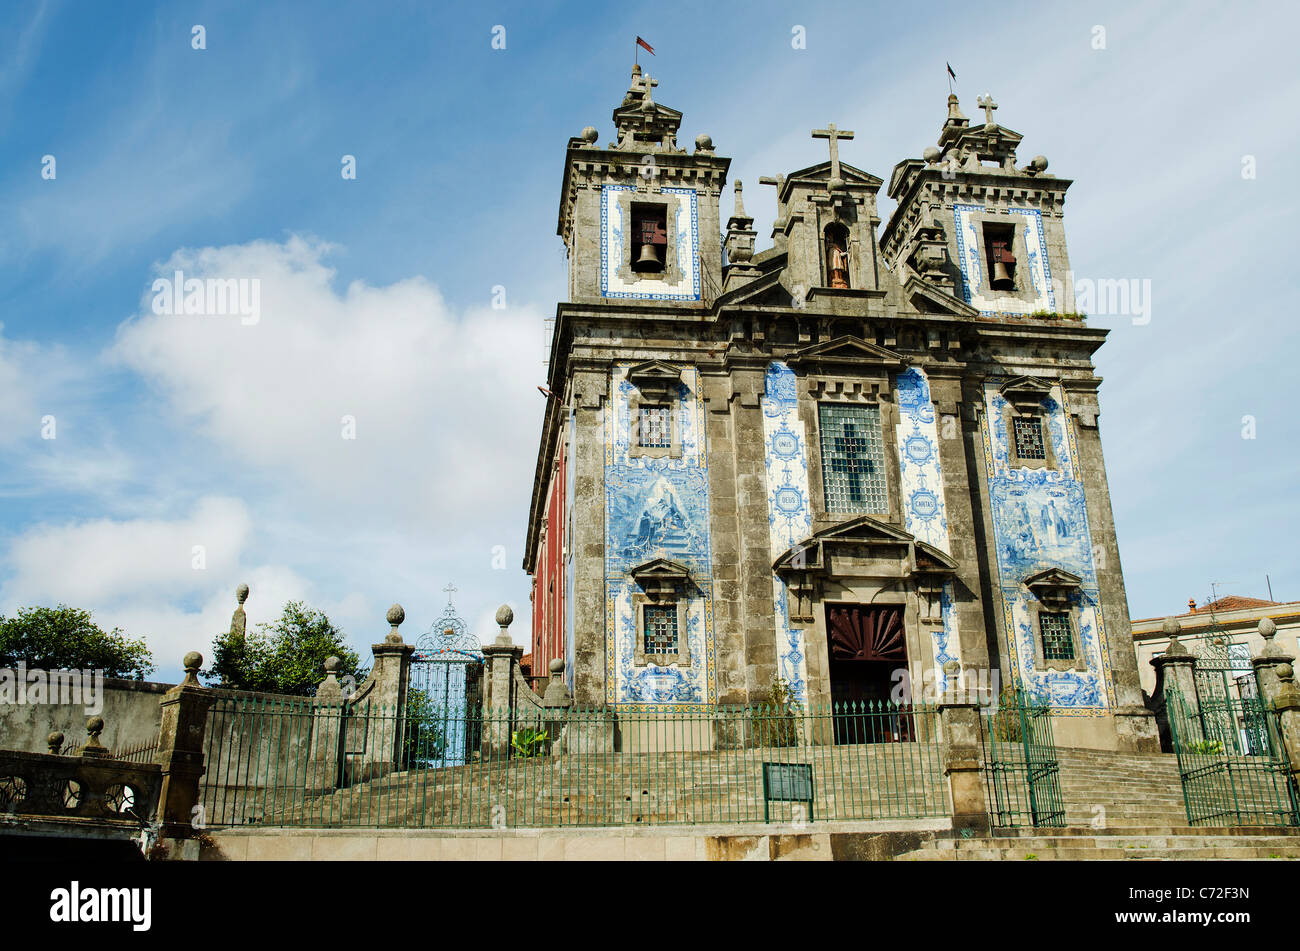 santo idelfonso church in porto portugal - Stock Image